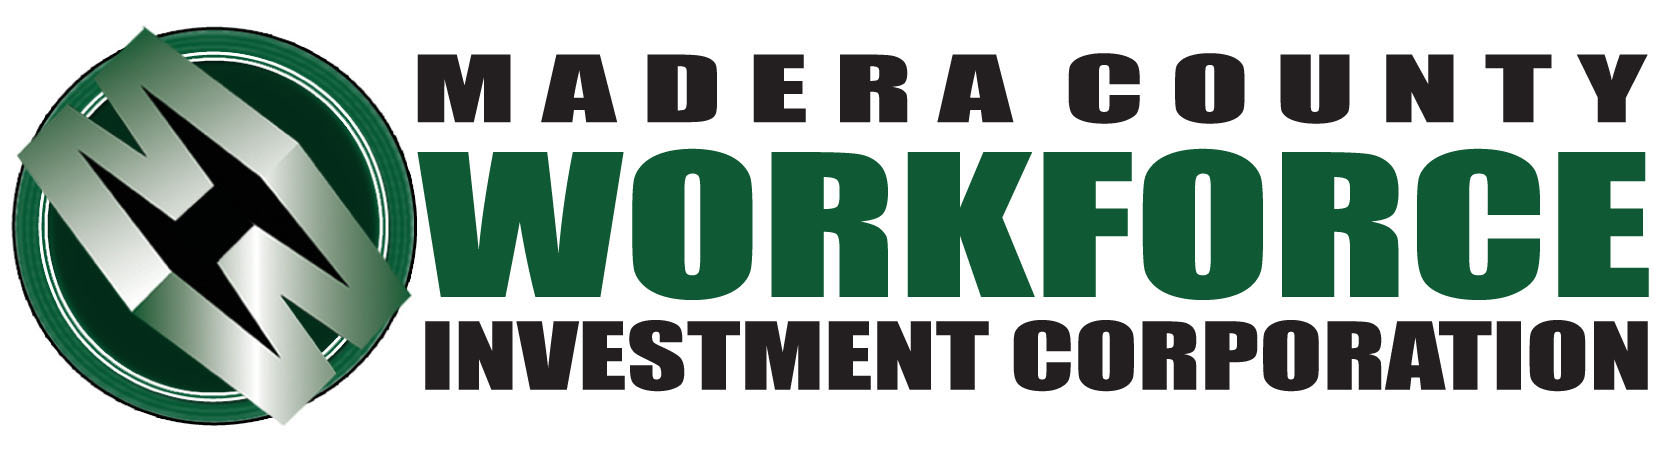 Madera County Workforce Investment Corporation Logo